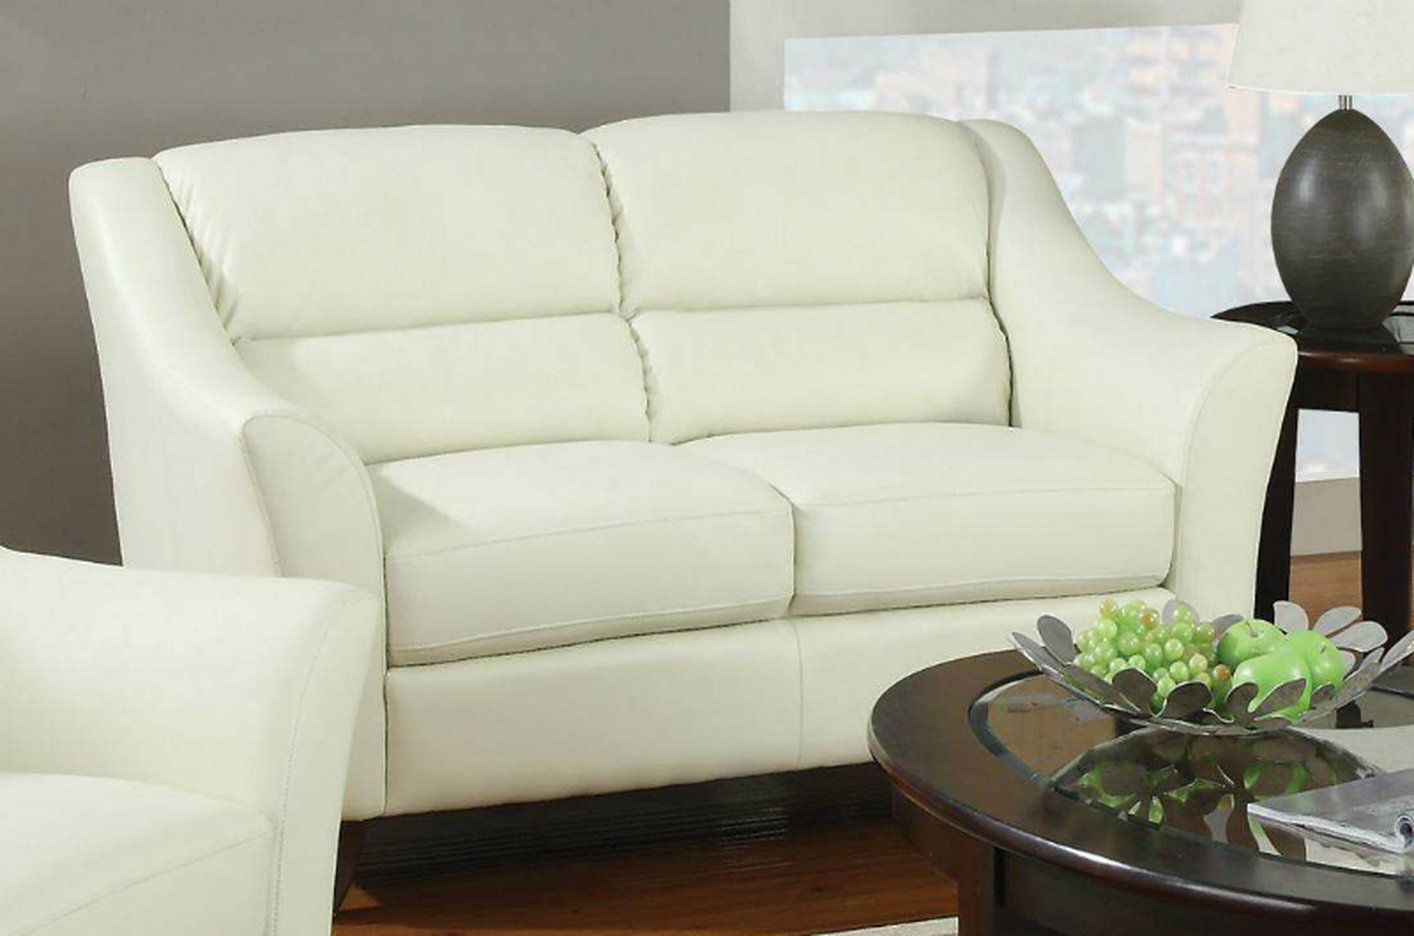 angeles loveseat outlet sofa furniture ivory los ca a coaster steal brooklyn